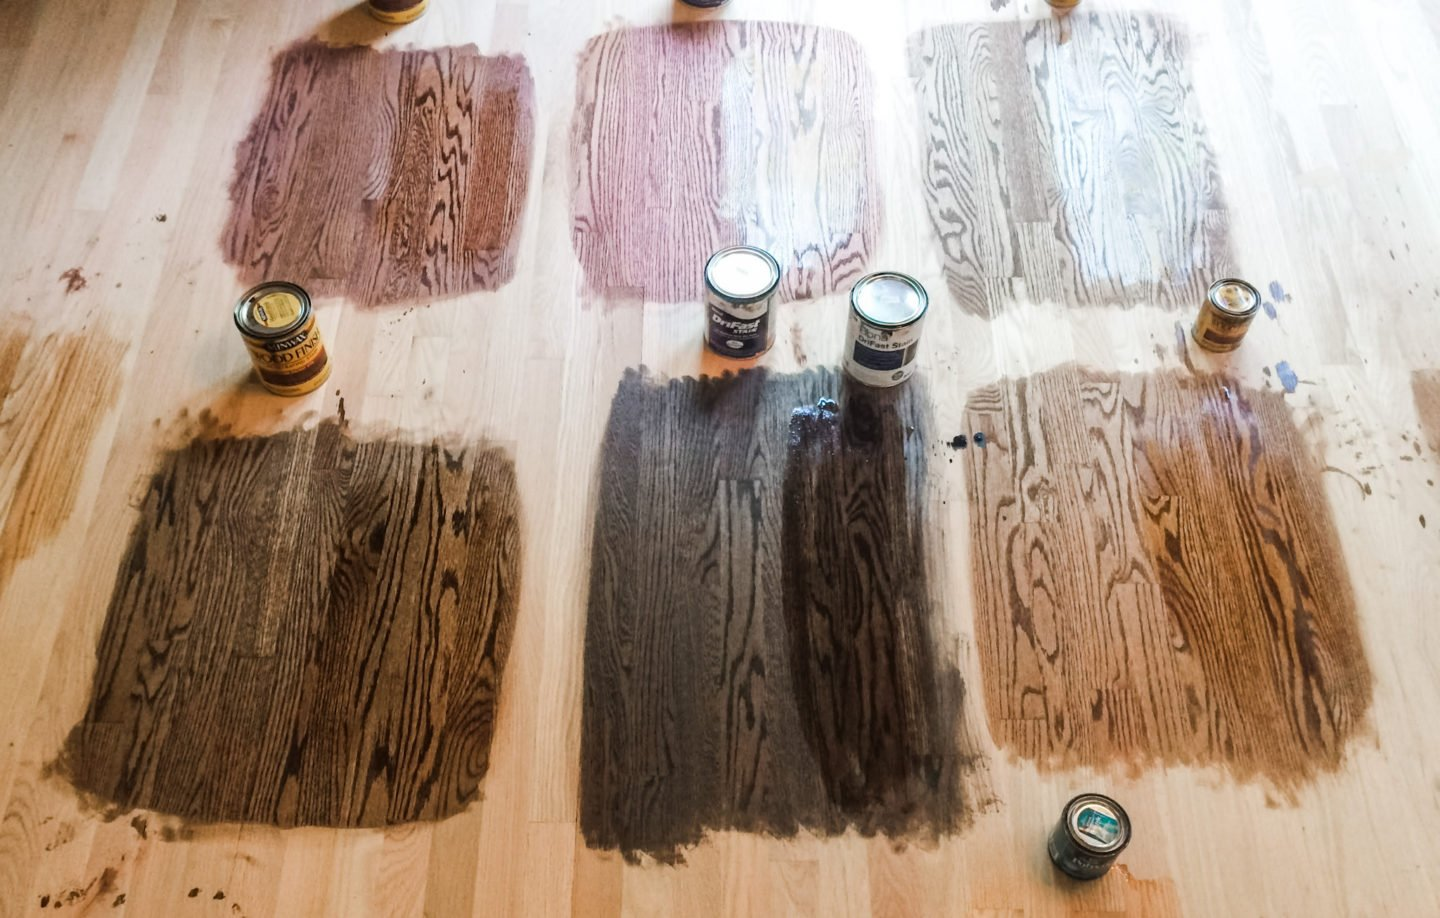 We applied our six stain choices to the floors once they were sanded to help us make a decision